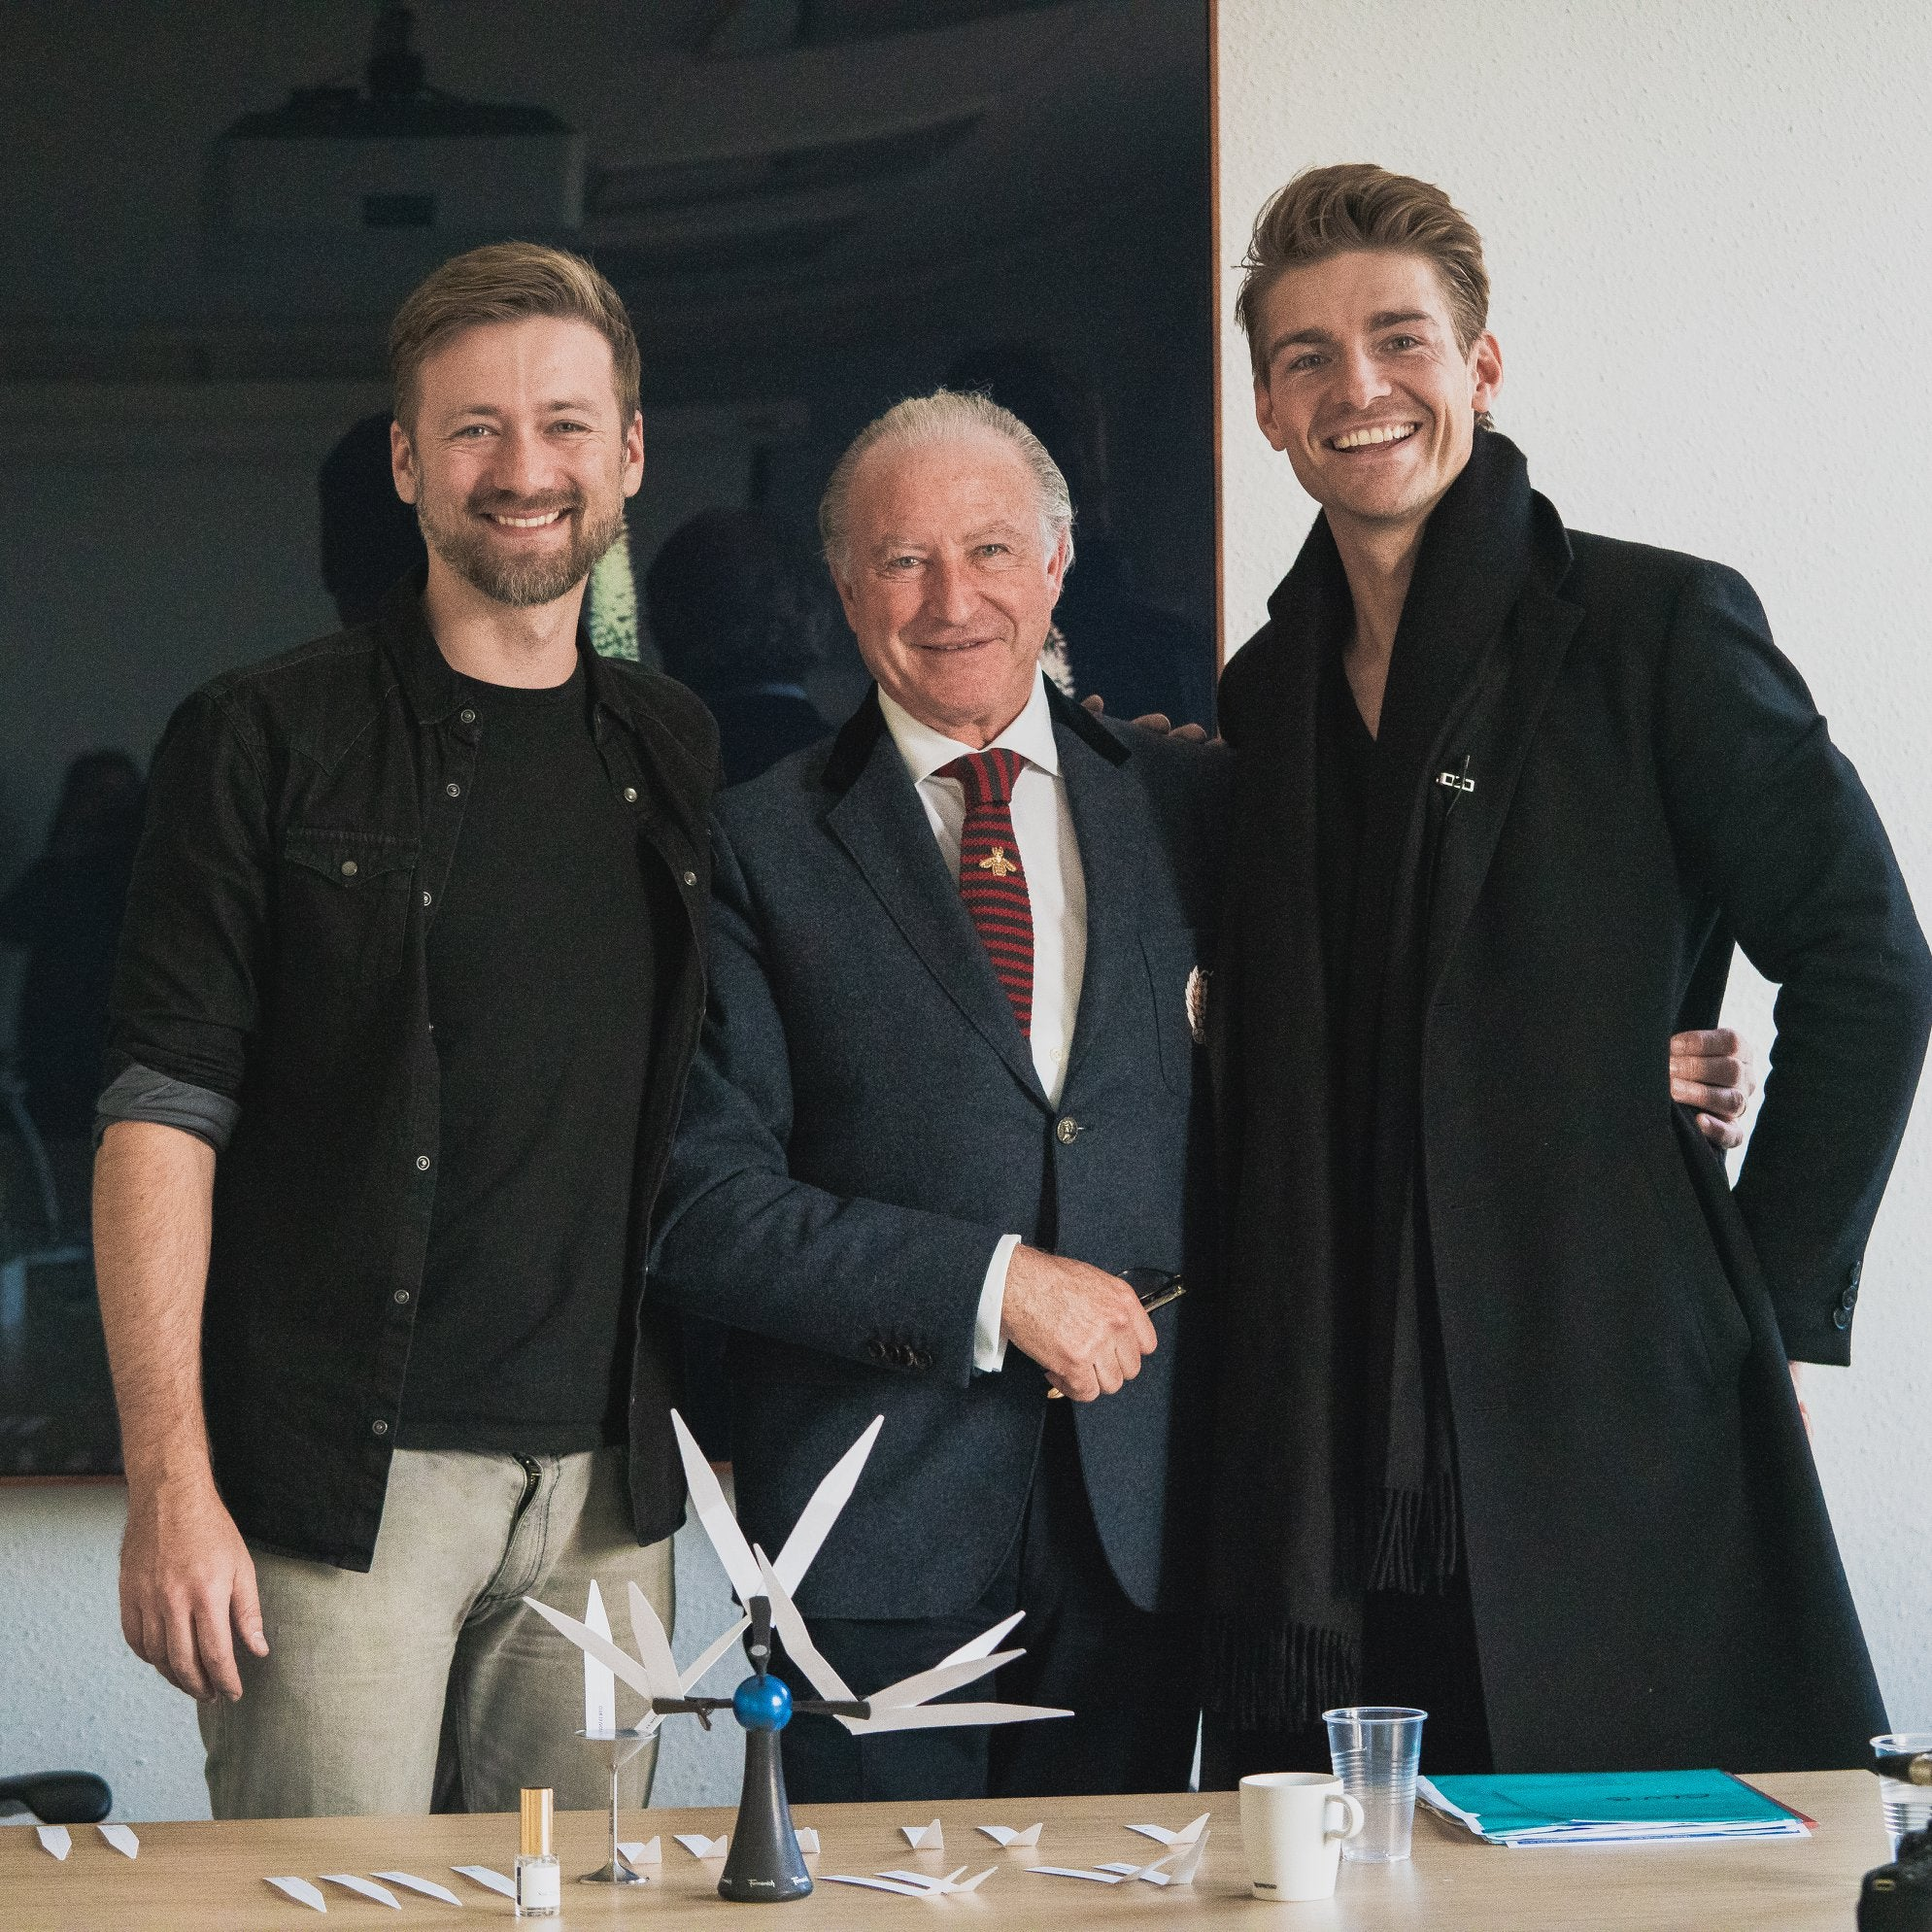 Kamil Banc (left), Alberto Morillas, (center), and Jeremy Banc (right) of Fragrance One.